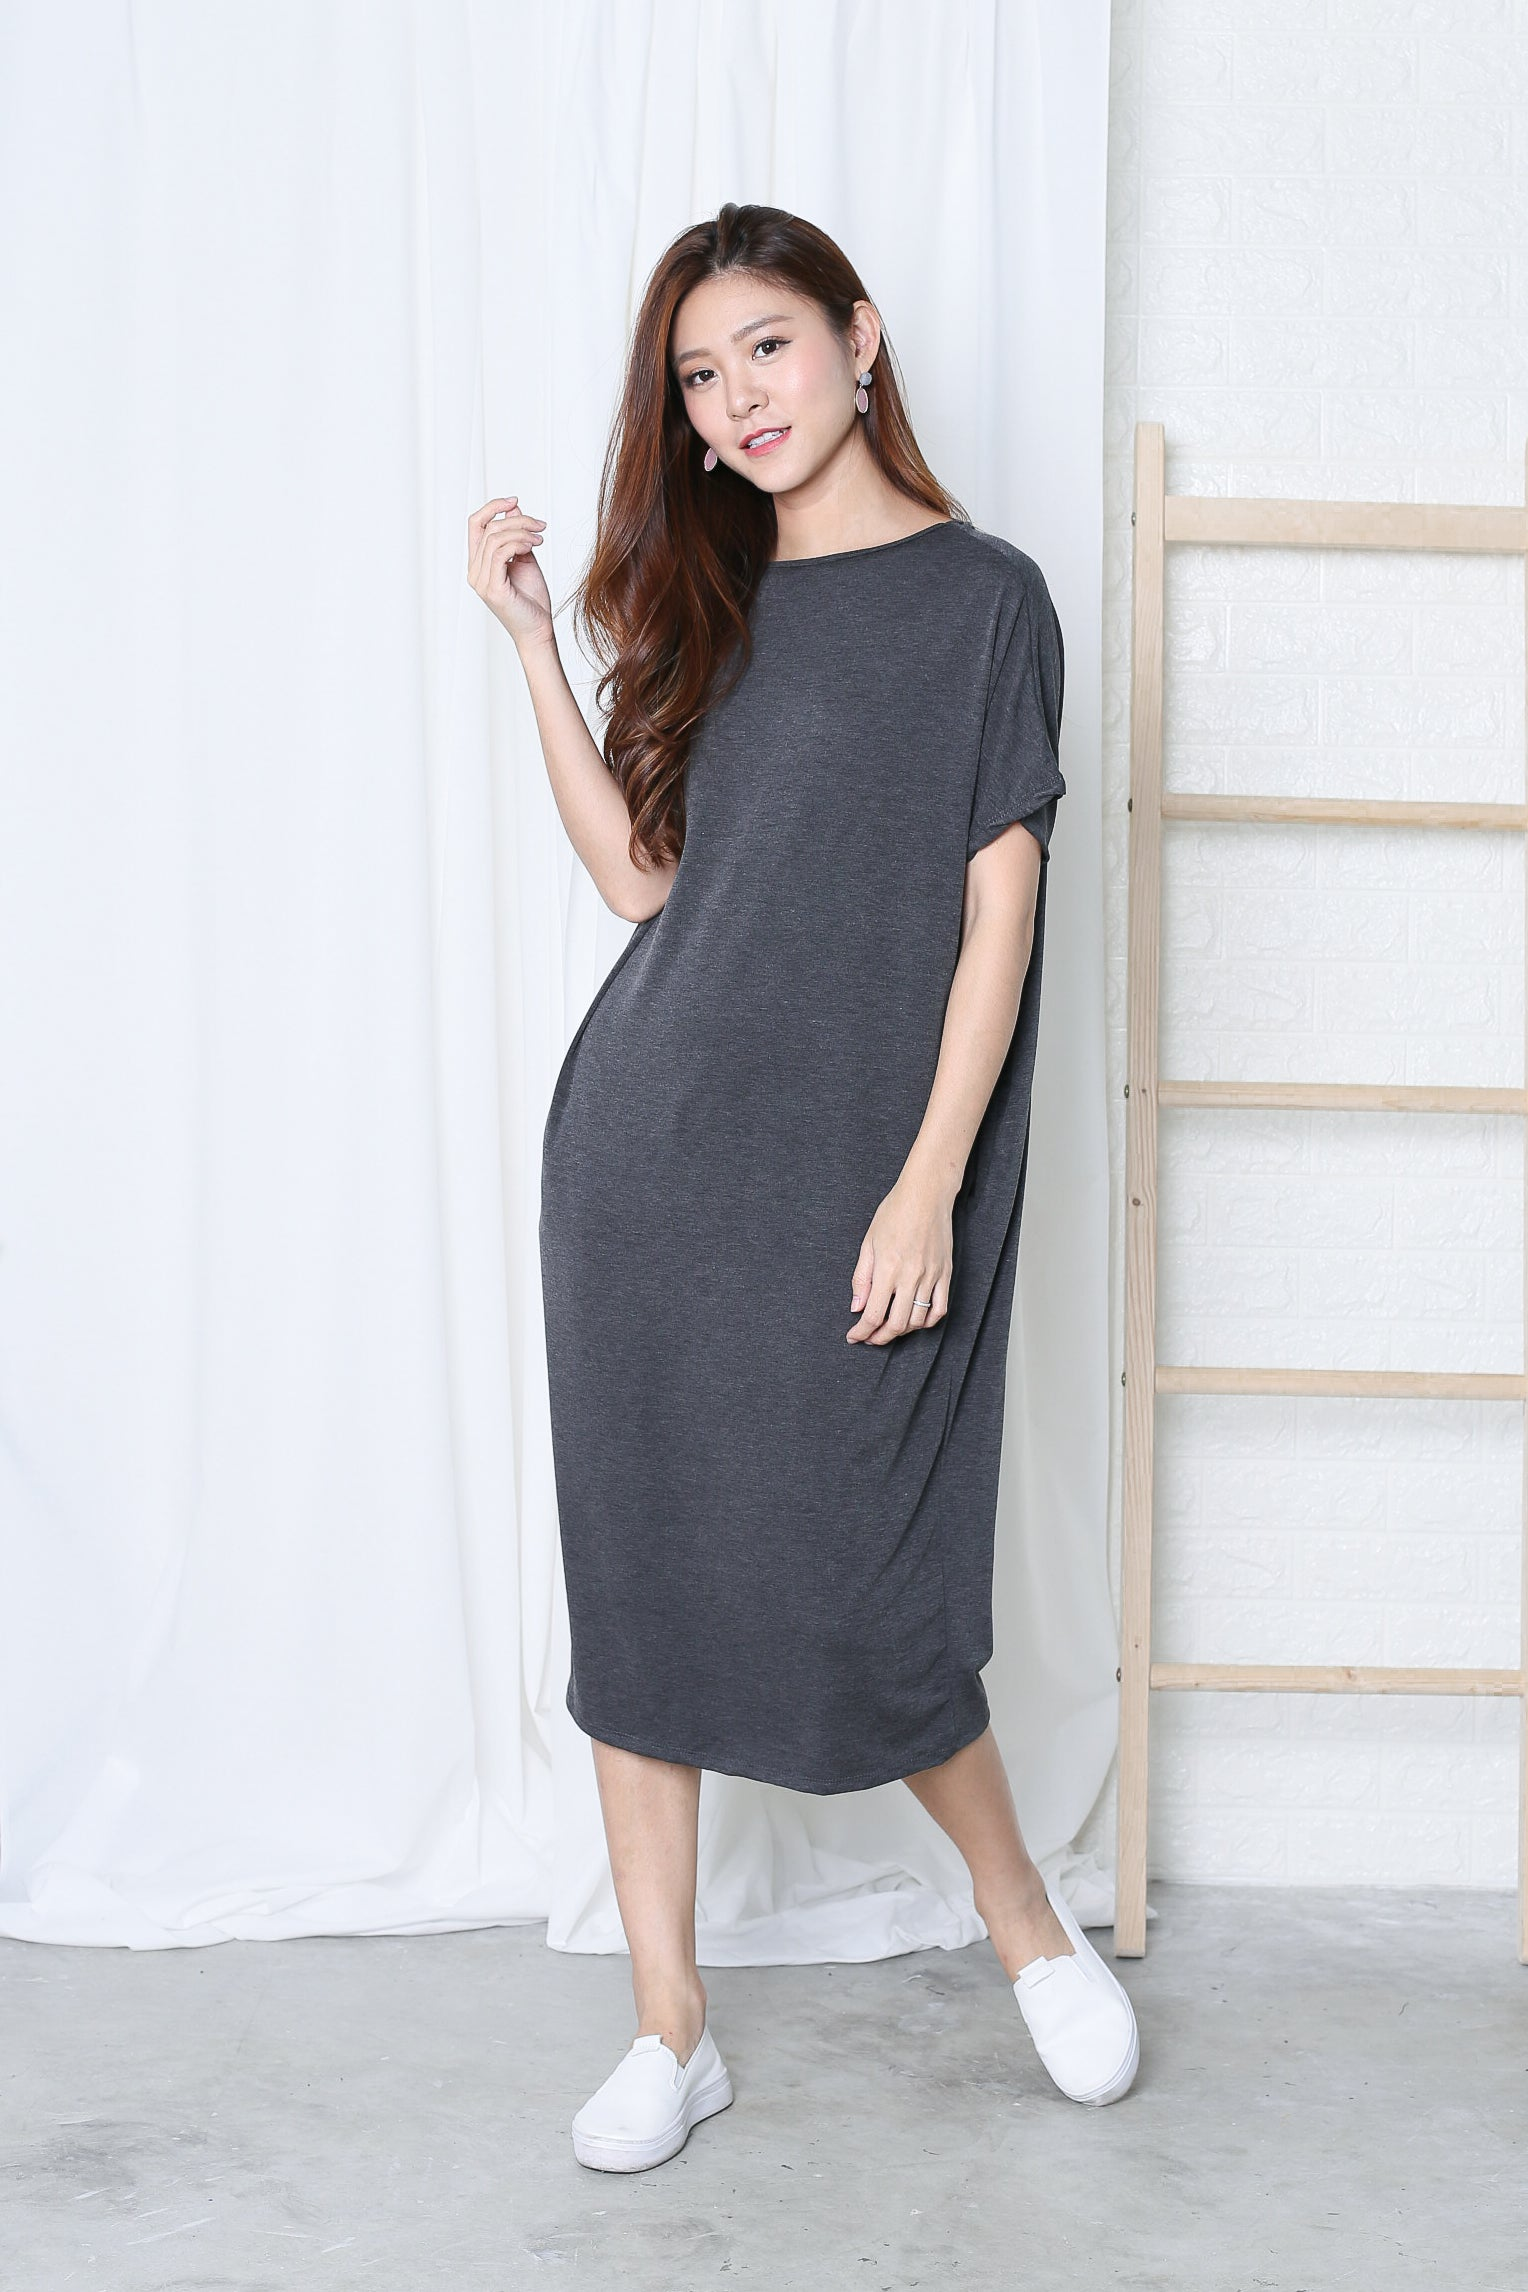 OVERSIZED LOUNGE POCKET DRESS IN DARK GREY